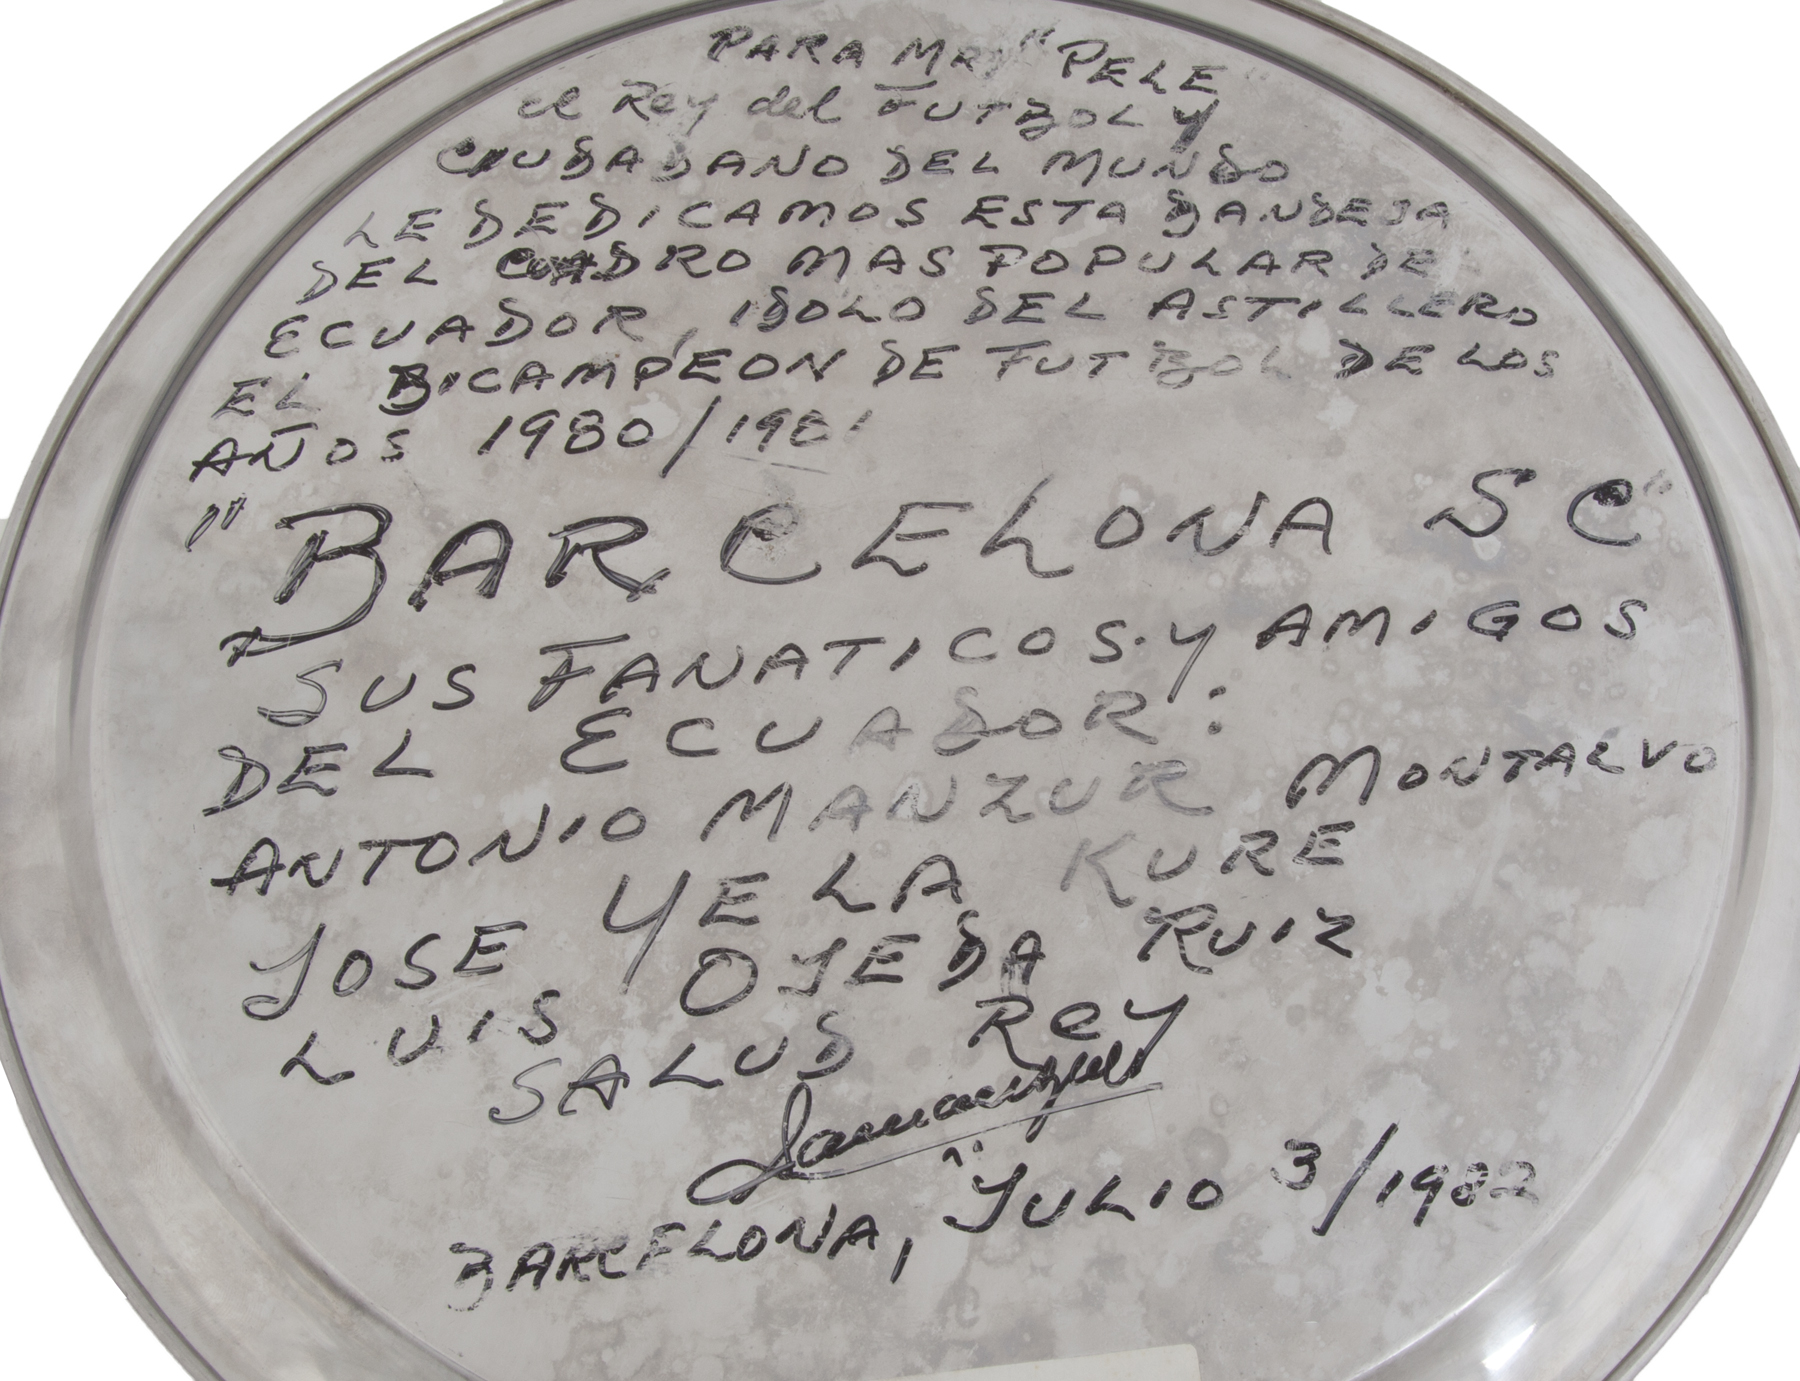 Lot 668 - PELÉ JULY 3, 1982, BARCELONA SC TRIBUTE PLATE